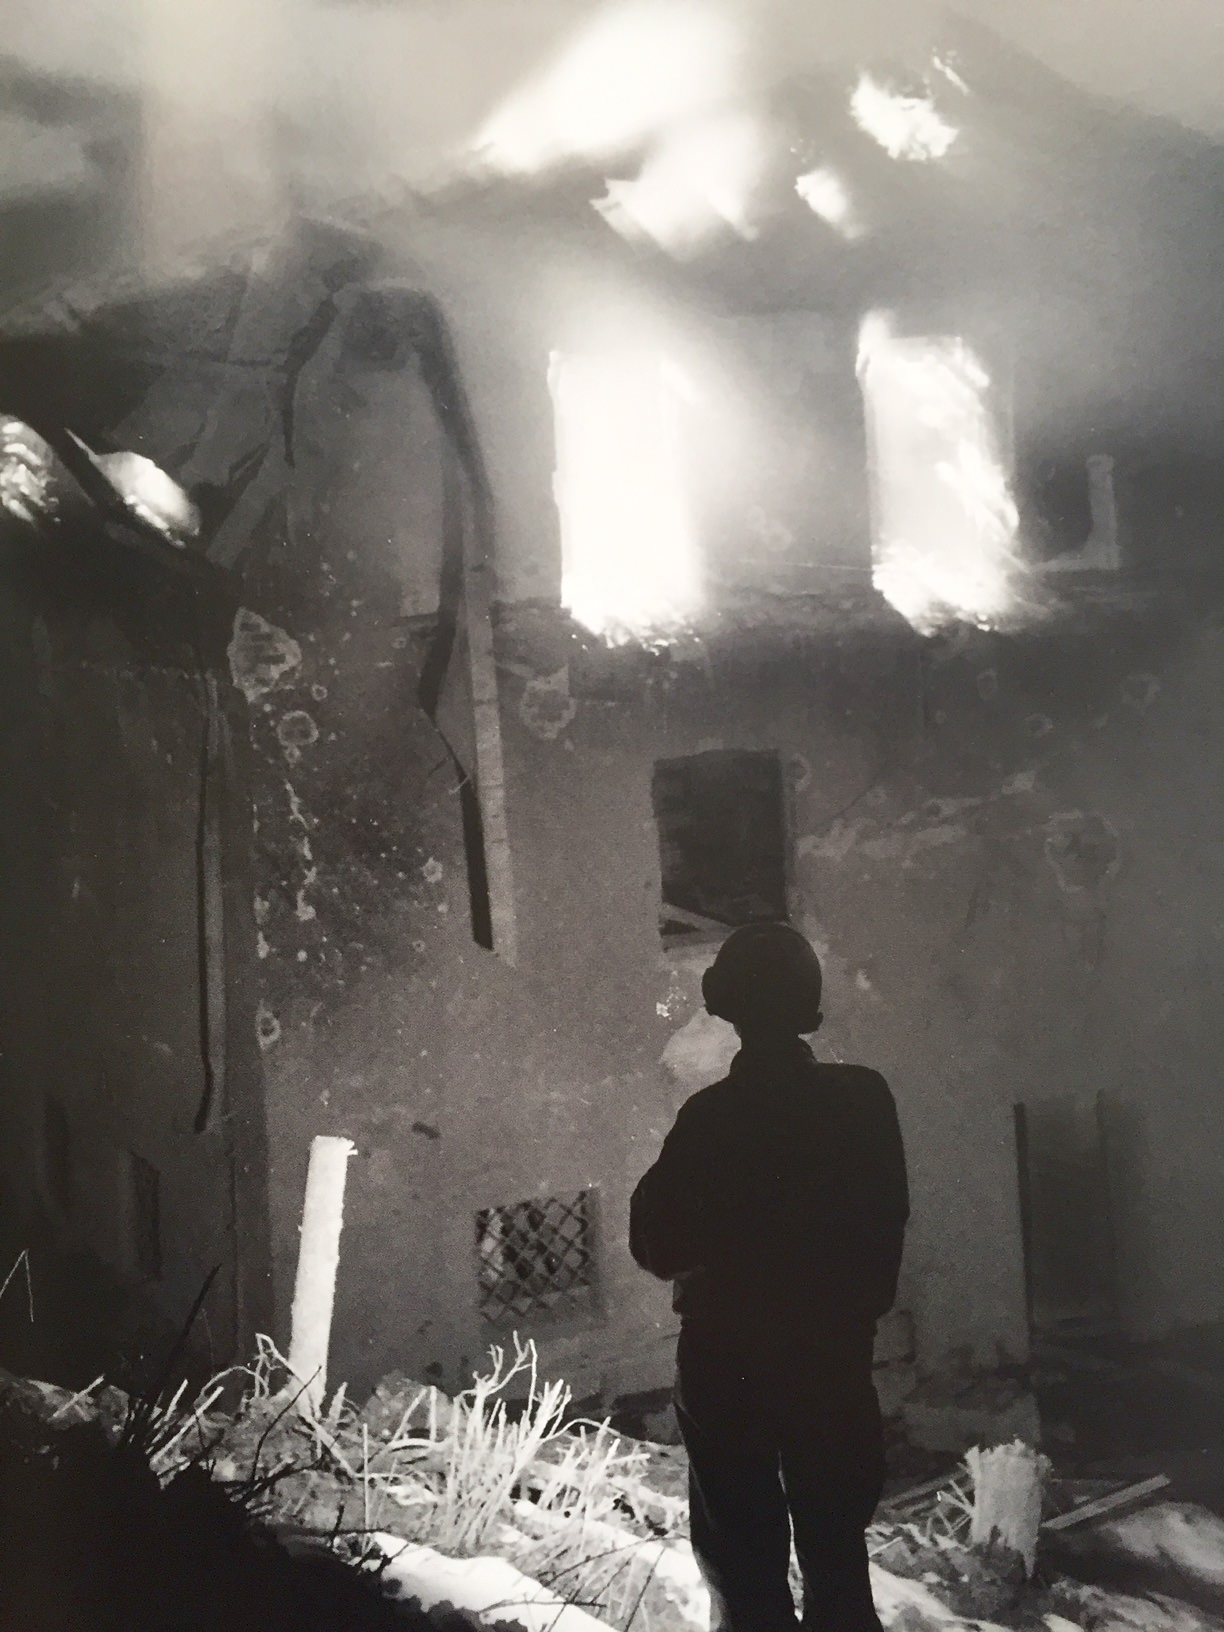 a woman looking a burning building in the 2nd world war